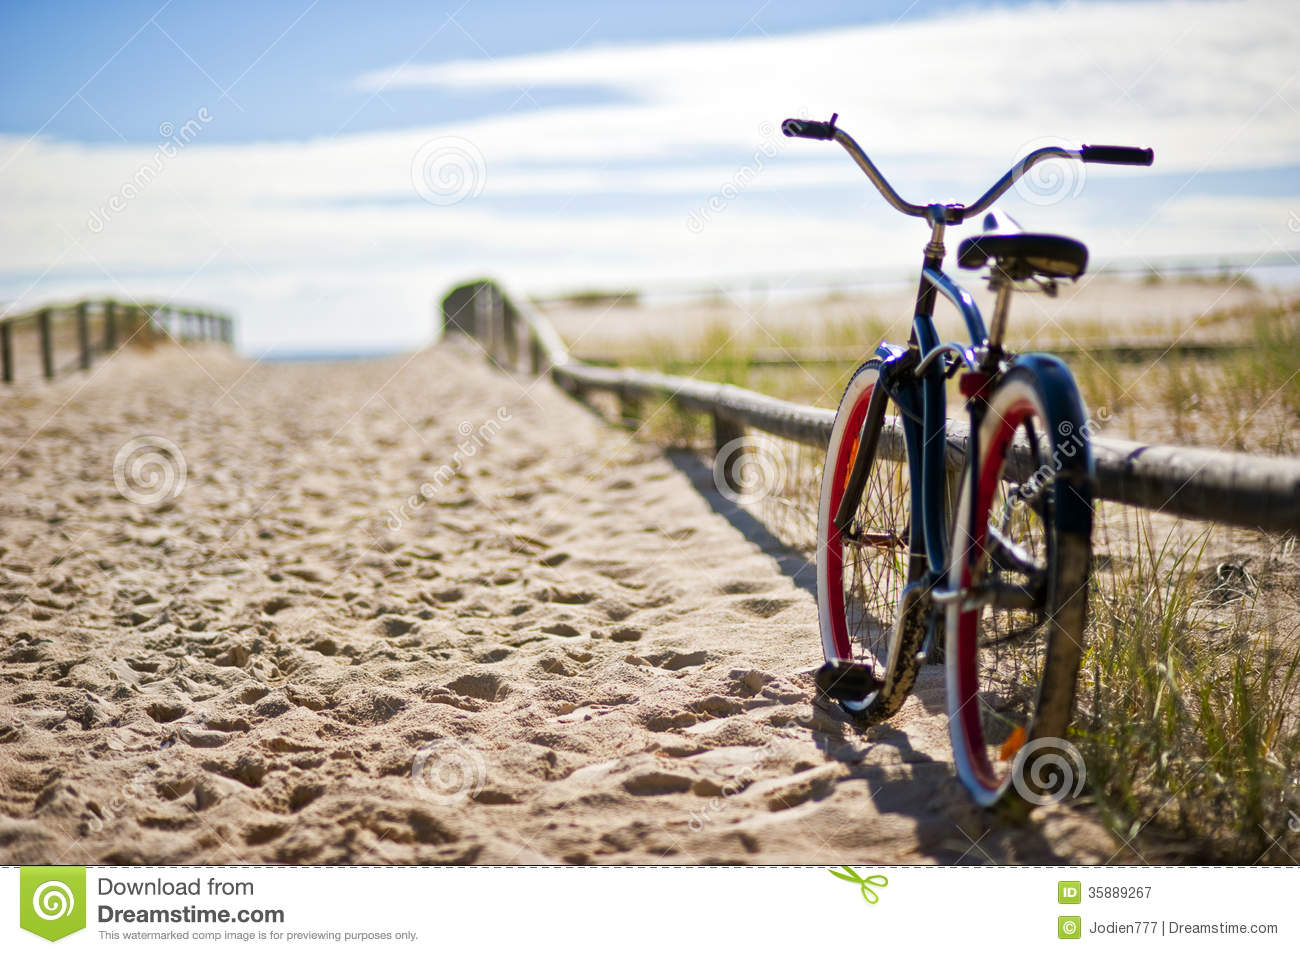 Bike on beach stock image. Image of mode, accessibility ...